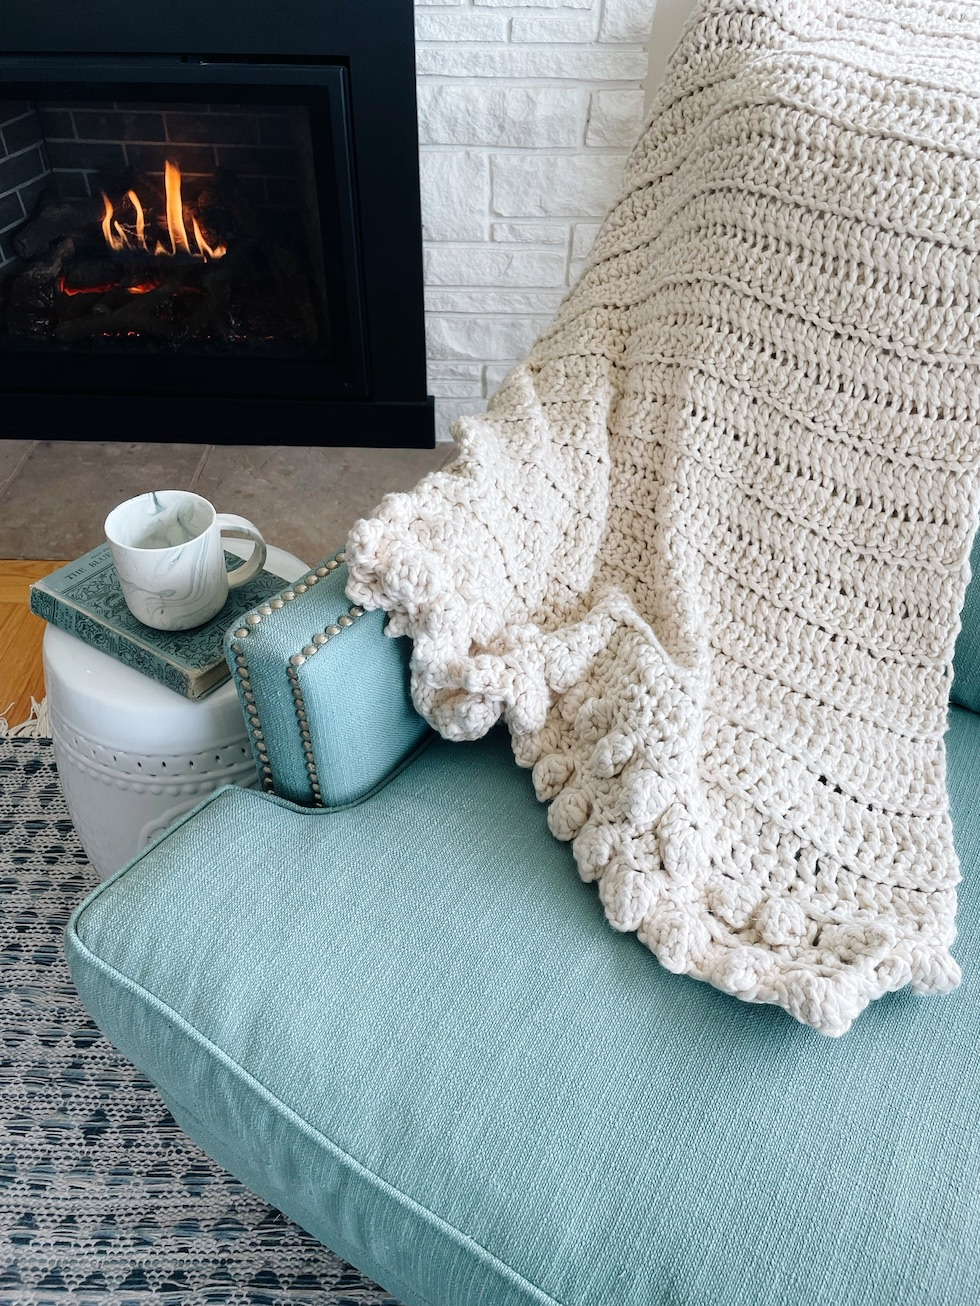 A Cozy Throw Blanket for Fall